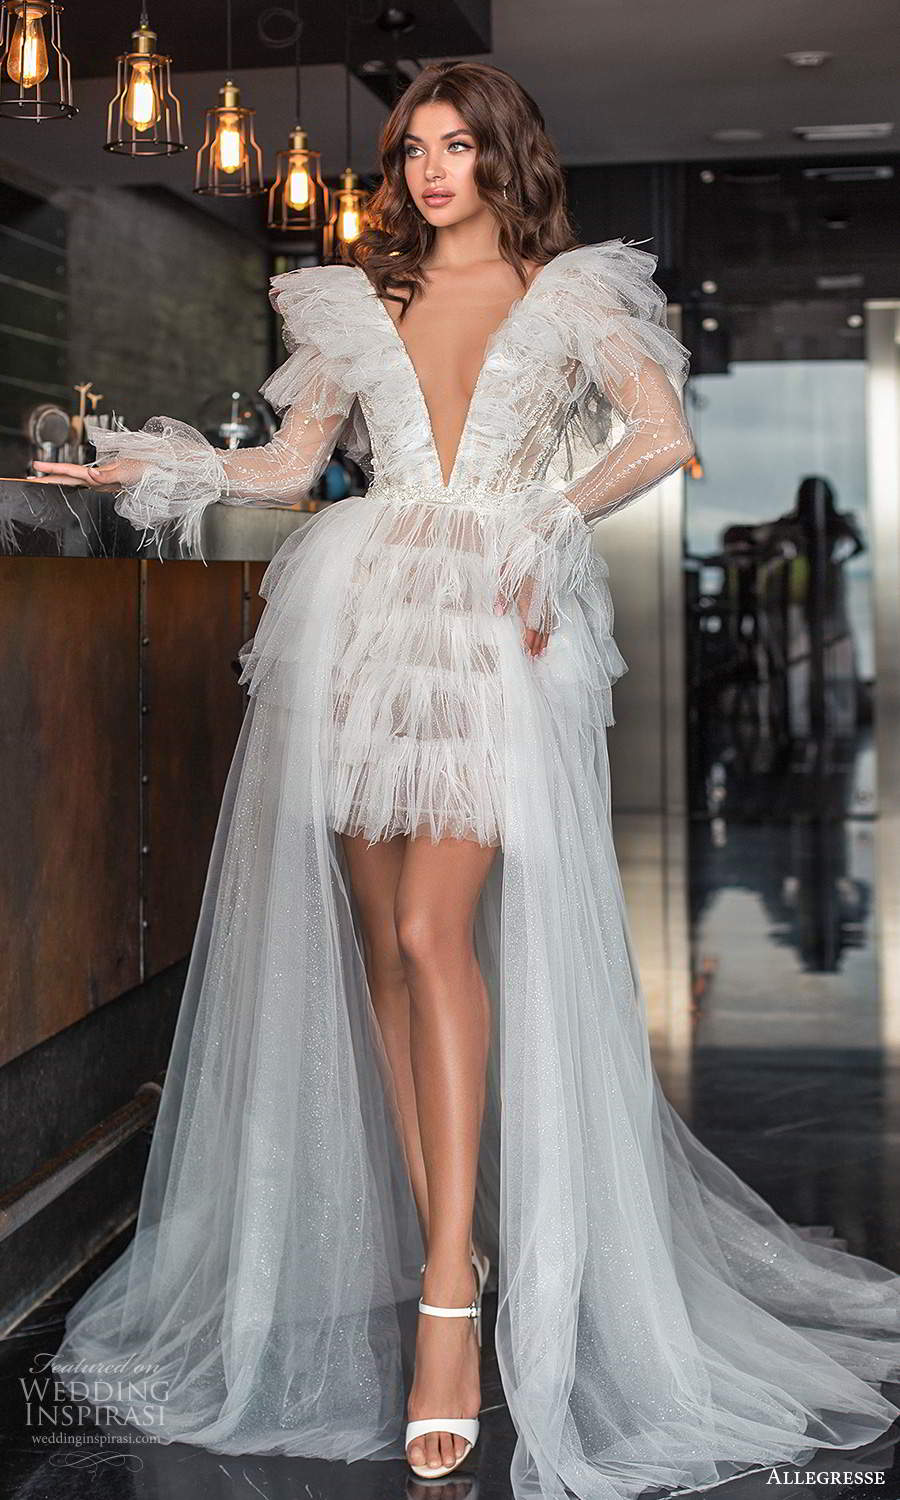 allegresse 2021 bridal sheer long sleeve plunging v neckline short wedding dress a line overskirt chapel train (1) mv